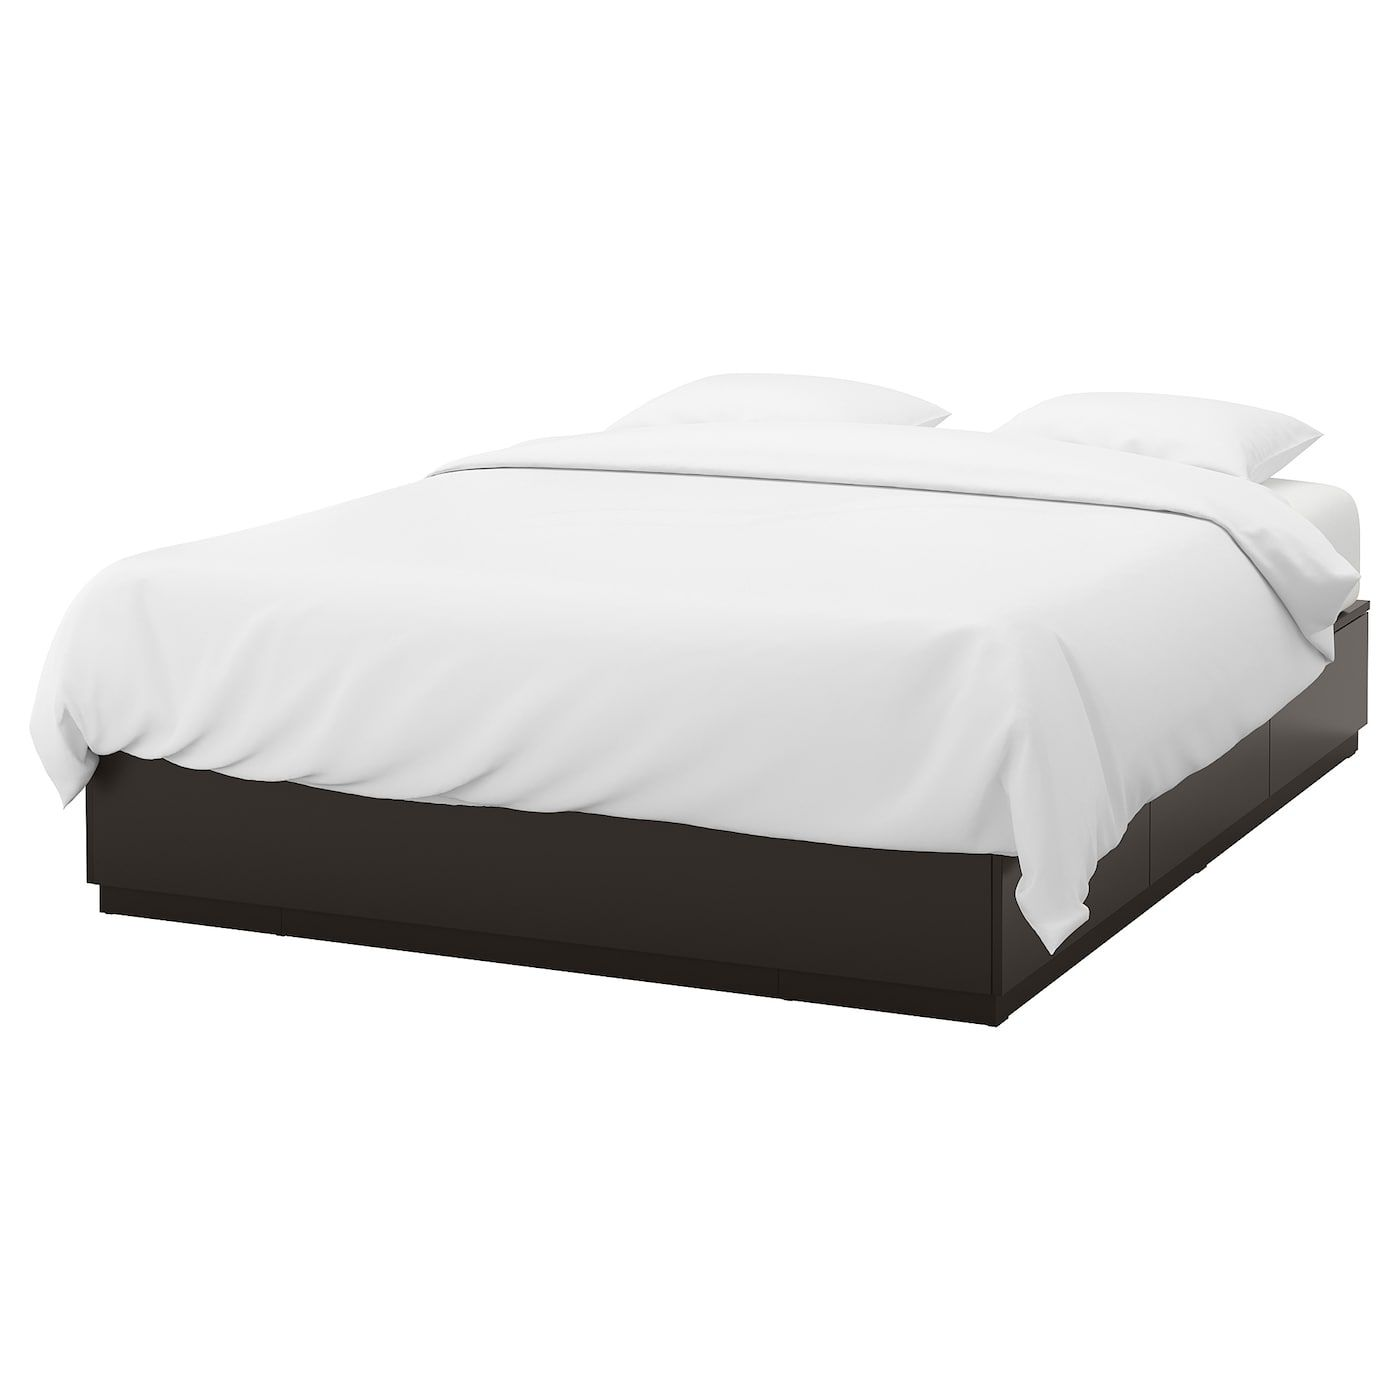 Ikea Nordli Anthracite Bed Frame With Storage Bed Frame With